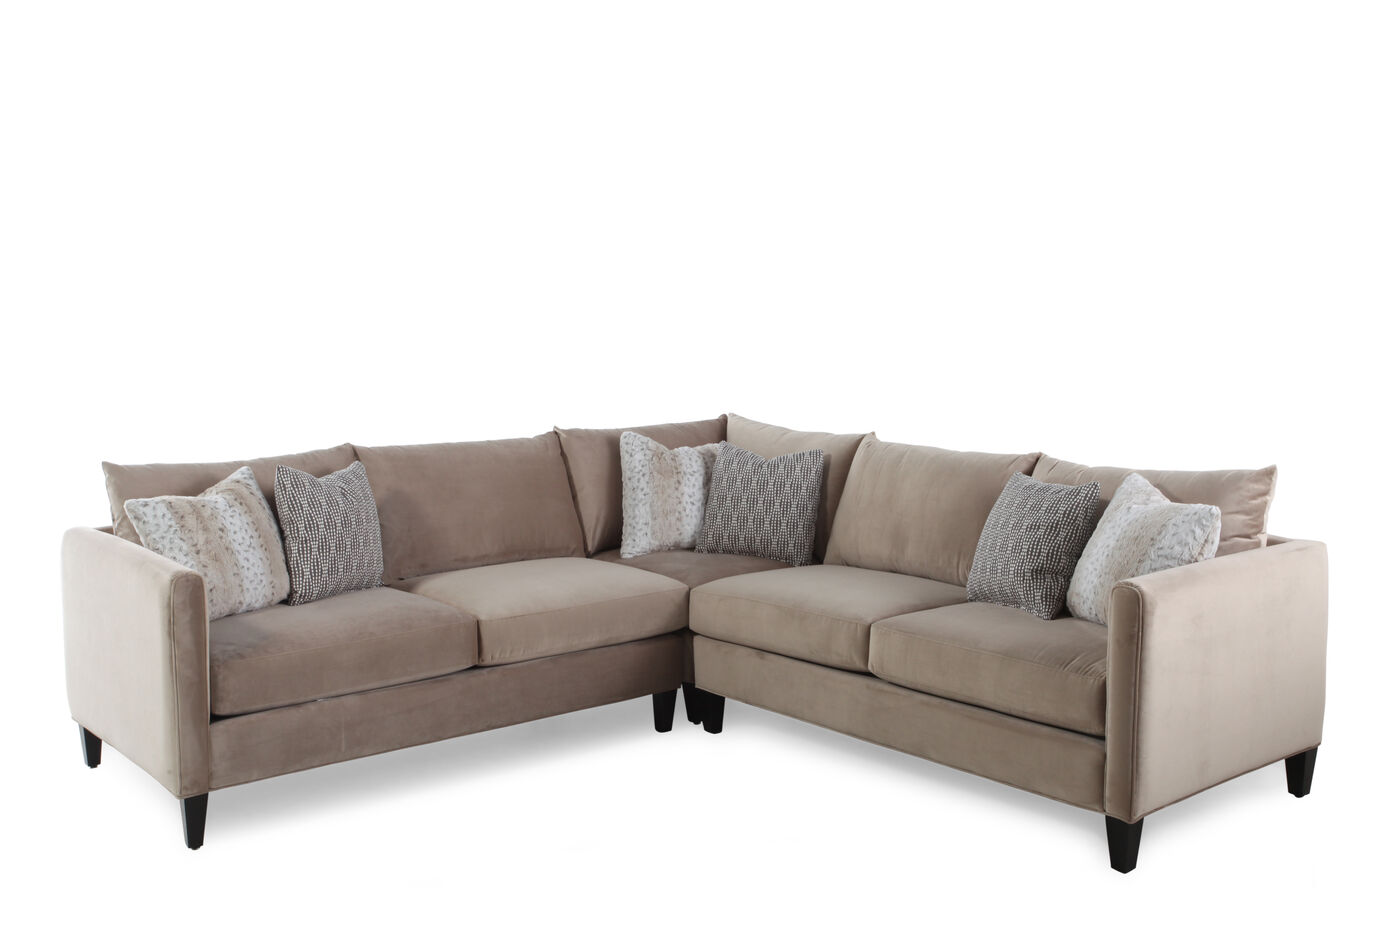 Jonathan Louis Sofas Jonathan Louis Choices Orion Sectional Homeworld Furniture Thesofa